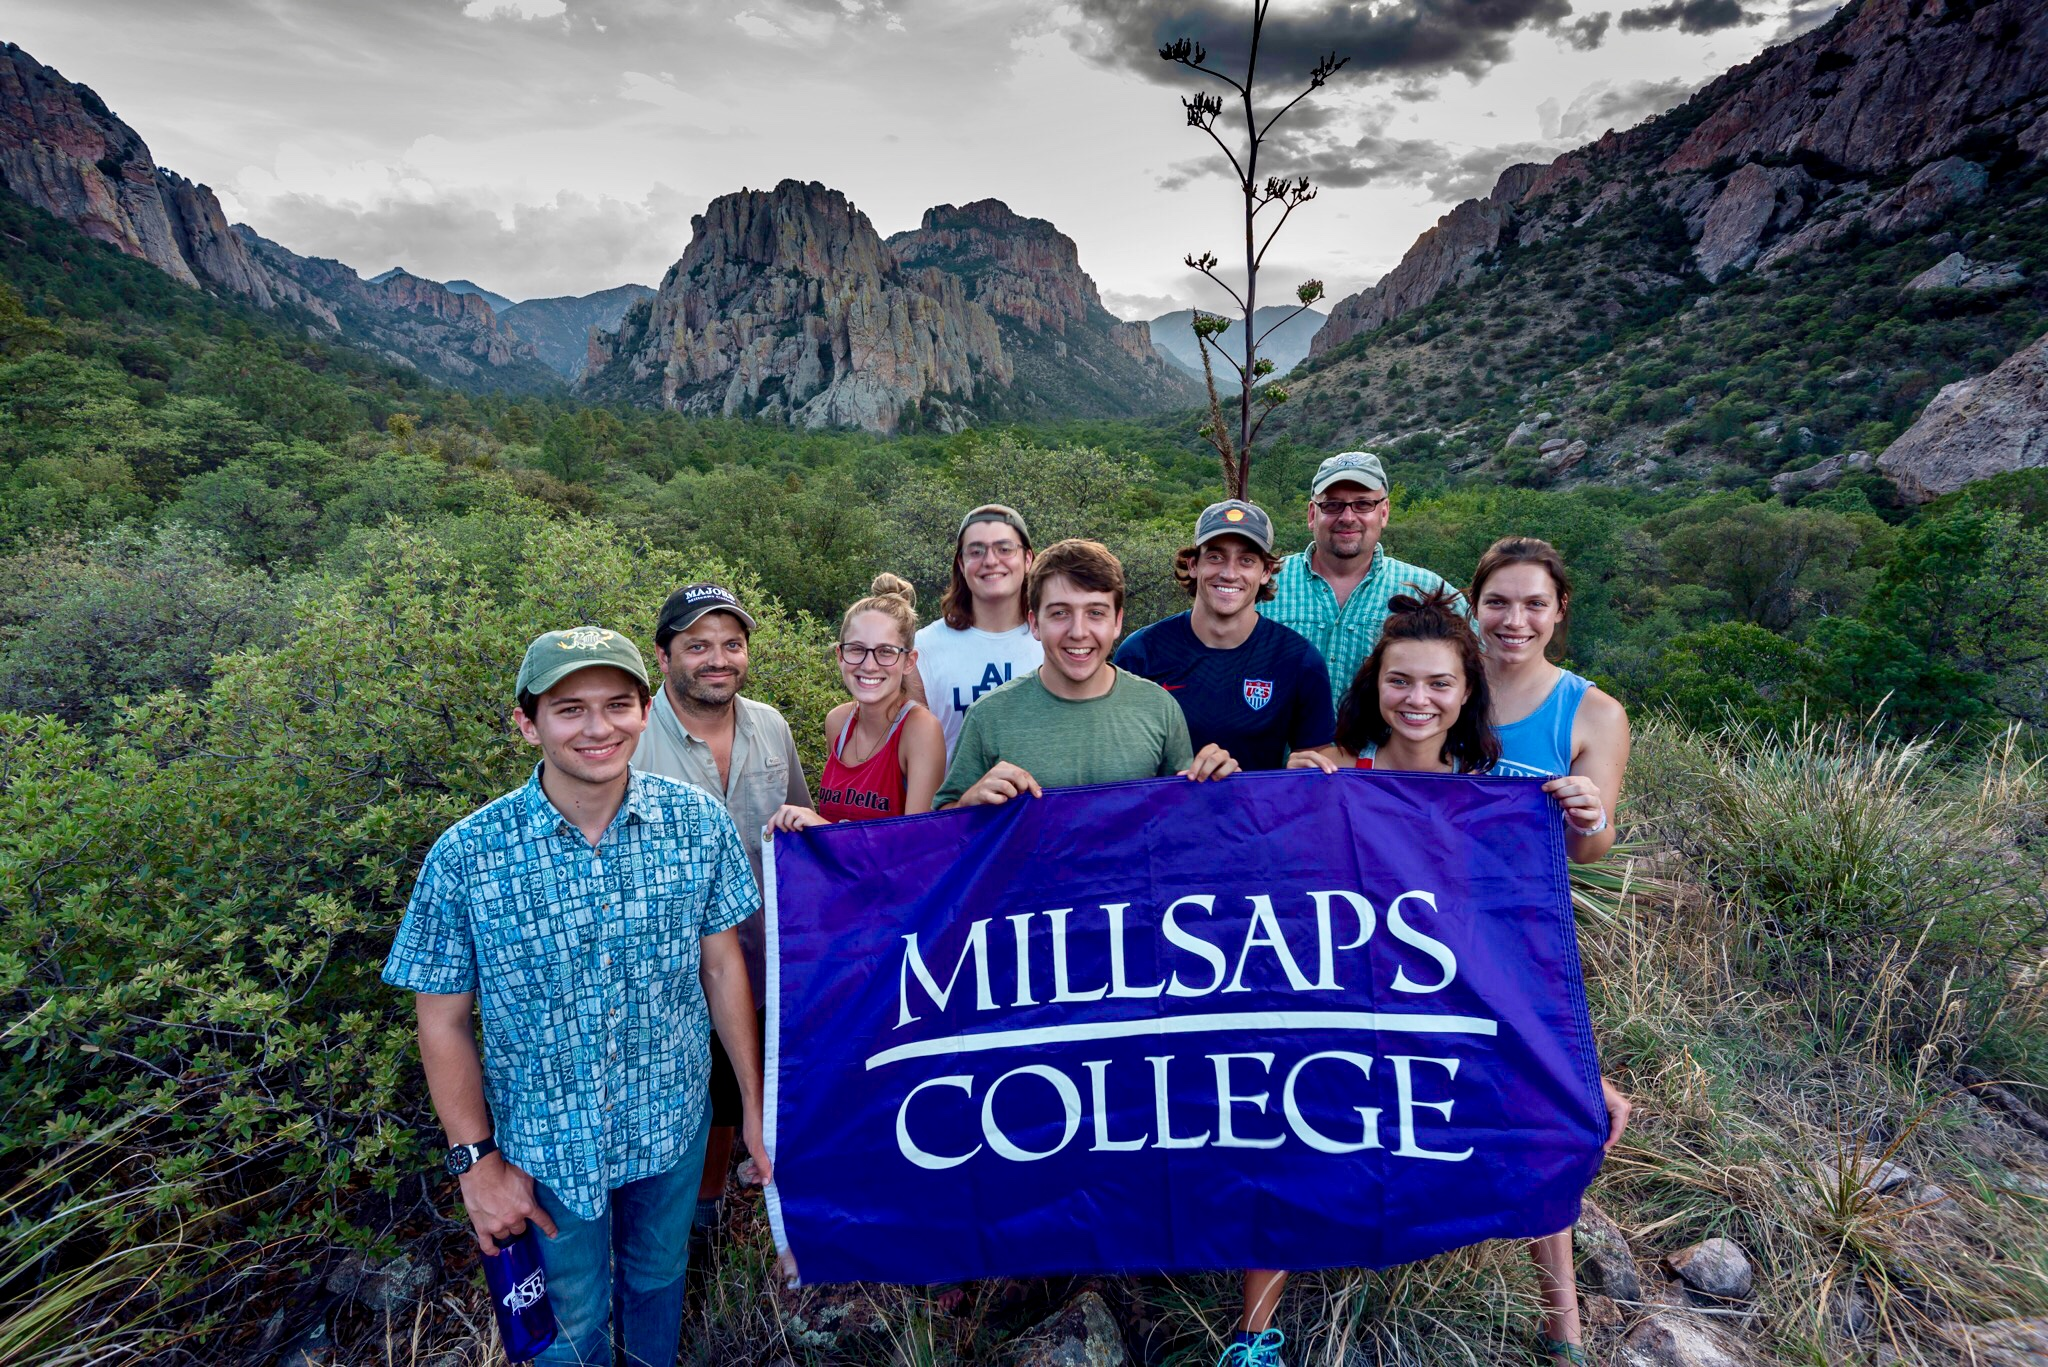 Cathedral Vista, Chiricahua Mountains. Photo by B.E. Hendrixson (second from left) with me looming behind a great group of students.